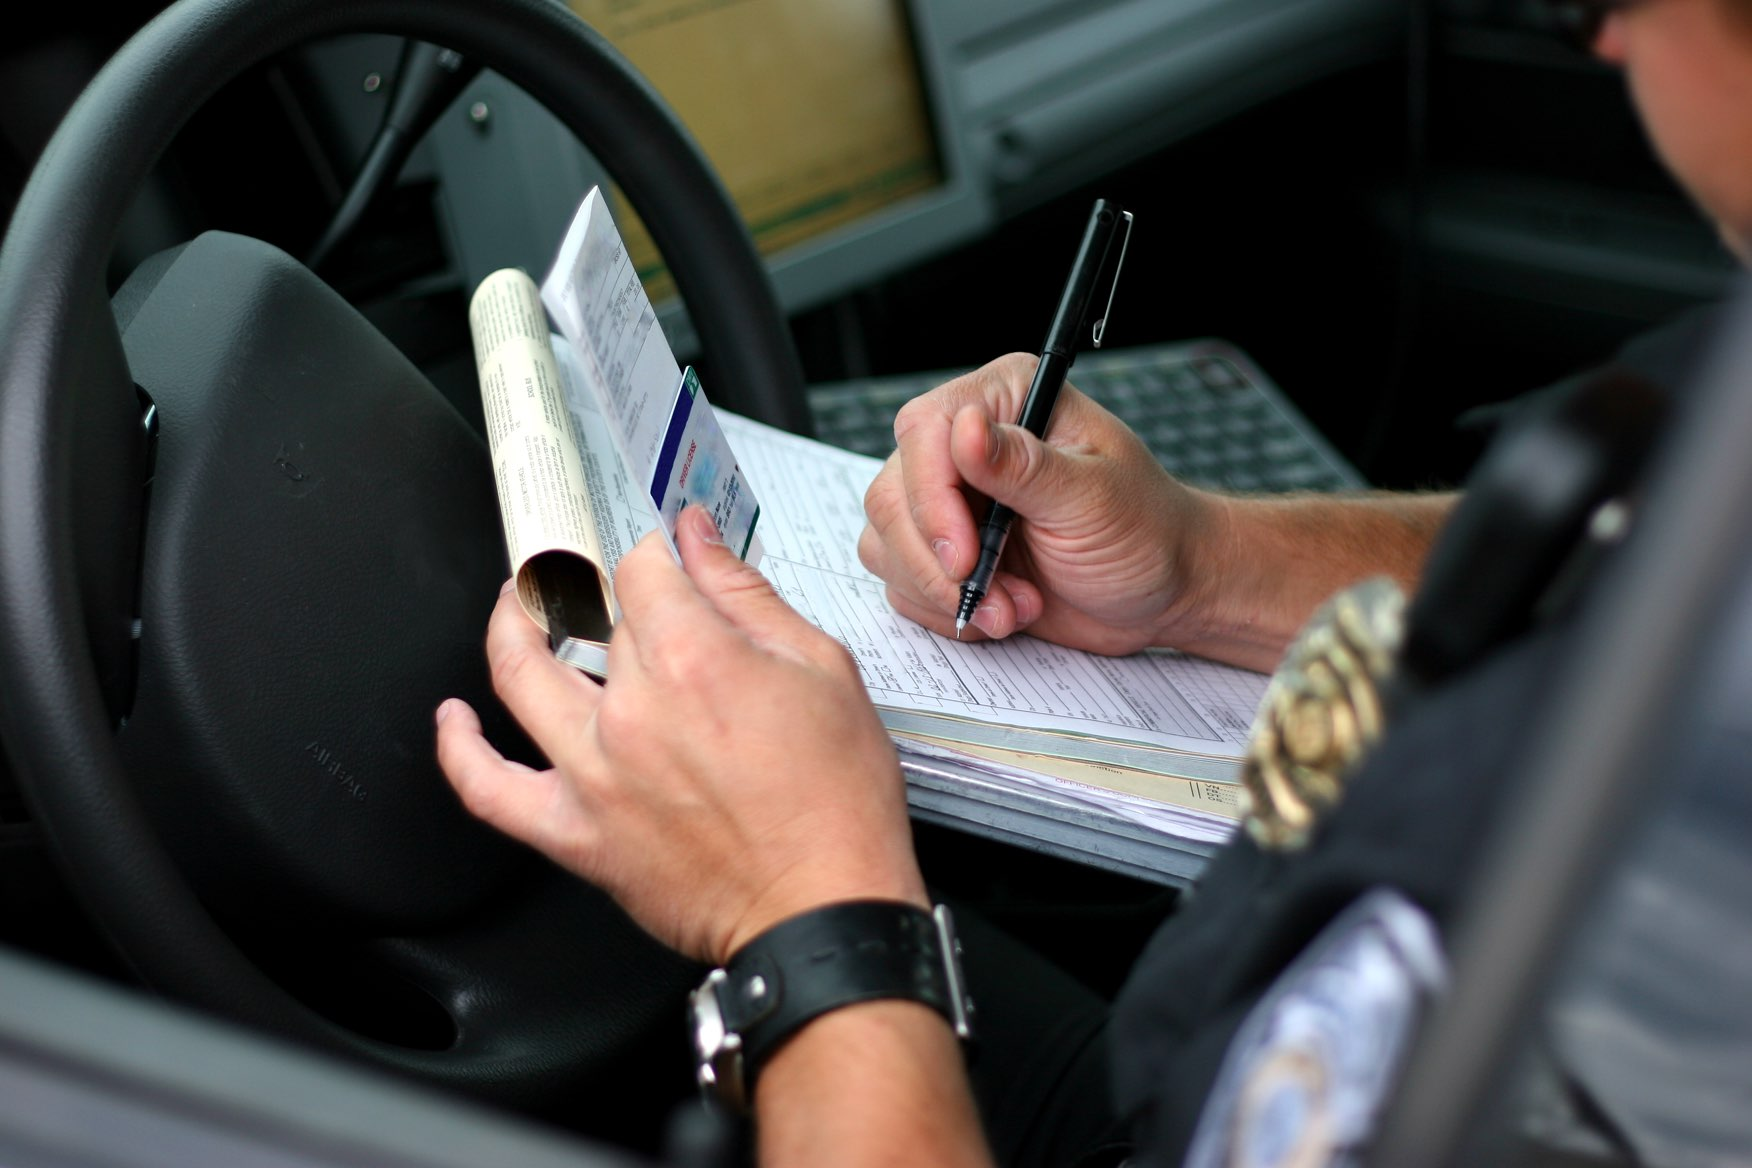 How Does a Traffic Ticket Impact an Auto Injury Case?